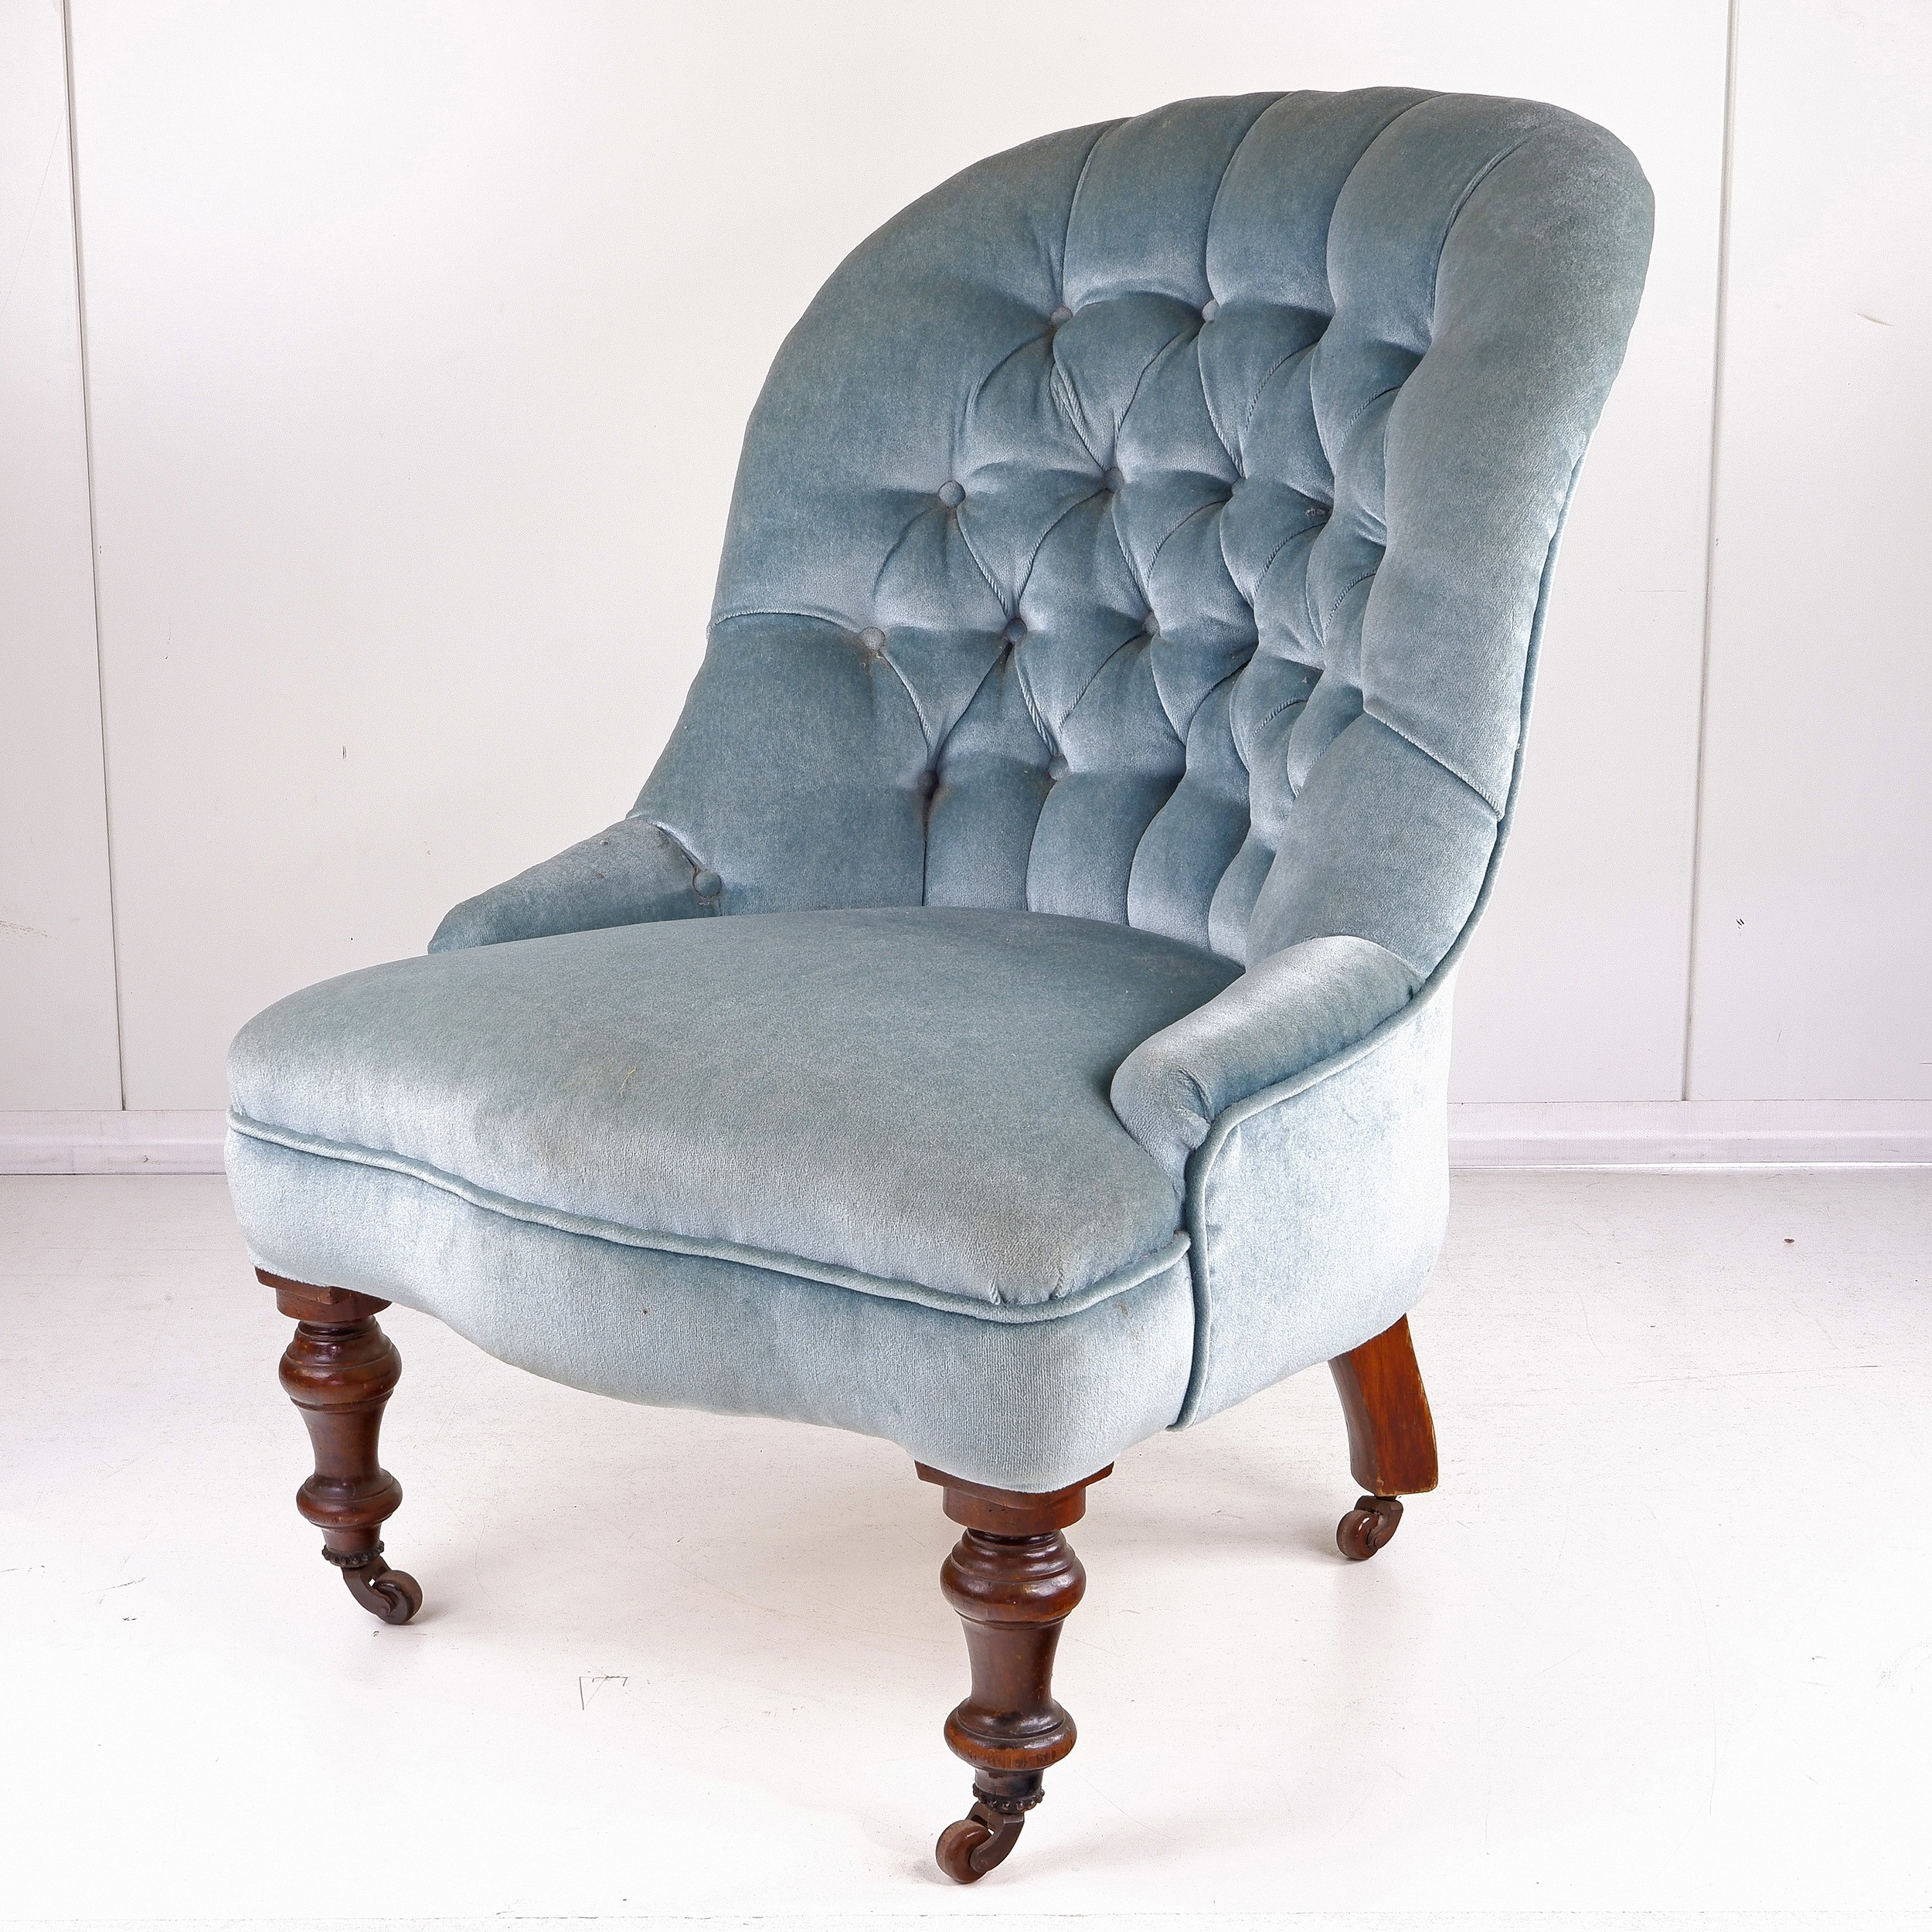 'Late Victorian Mahogany and Blue Buttoned Satin Slipper Chair Circa 1880'